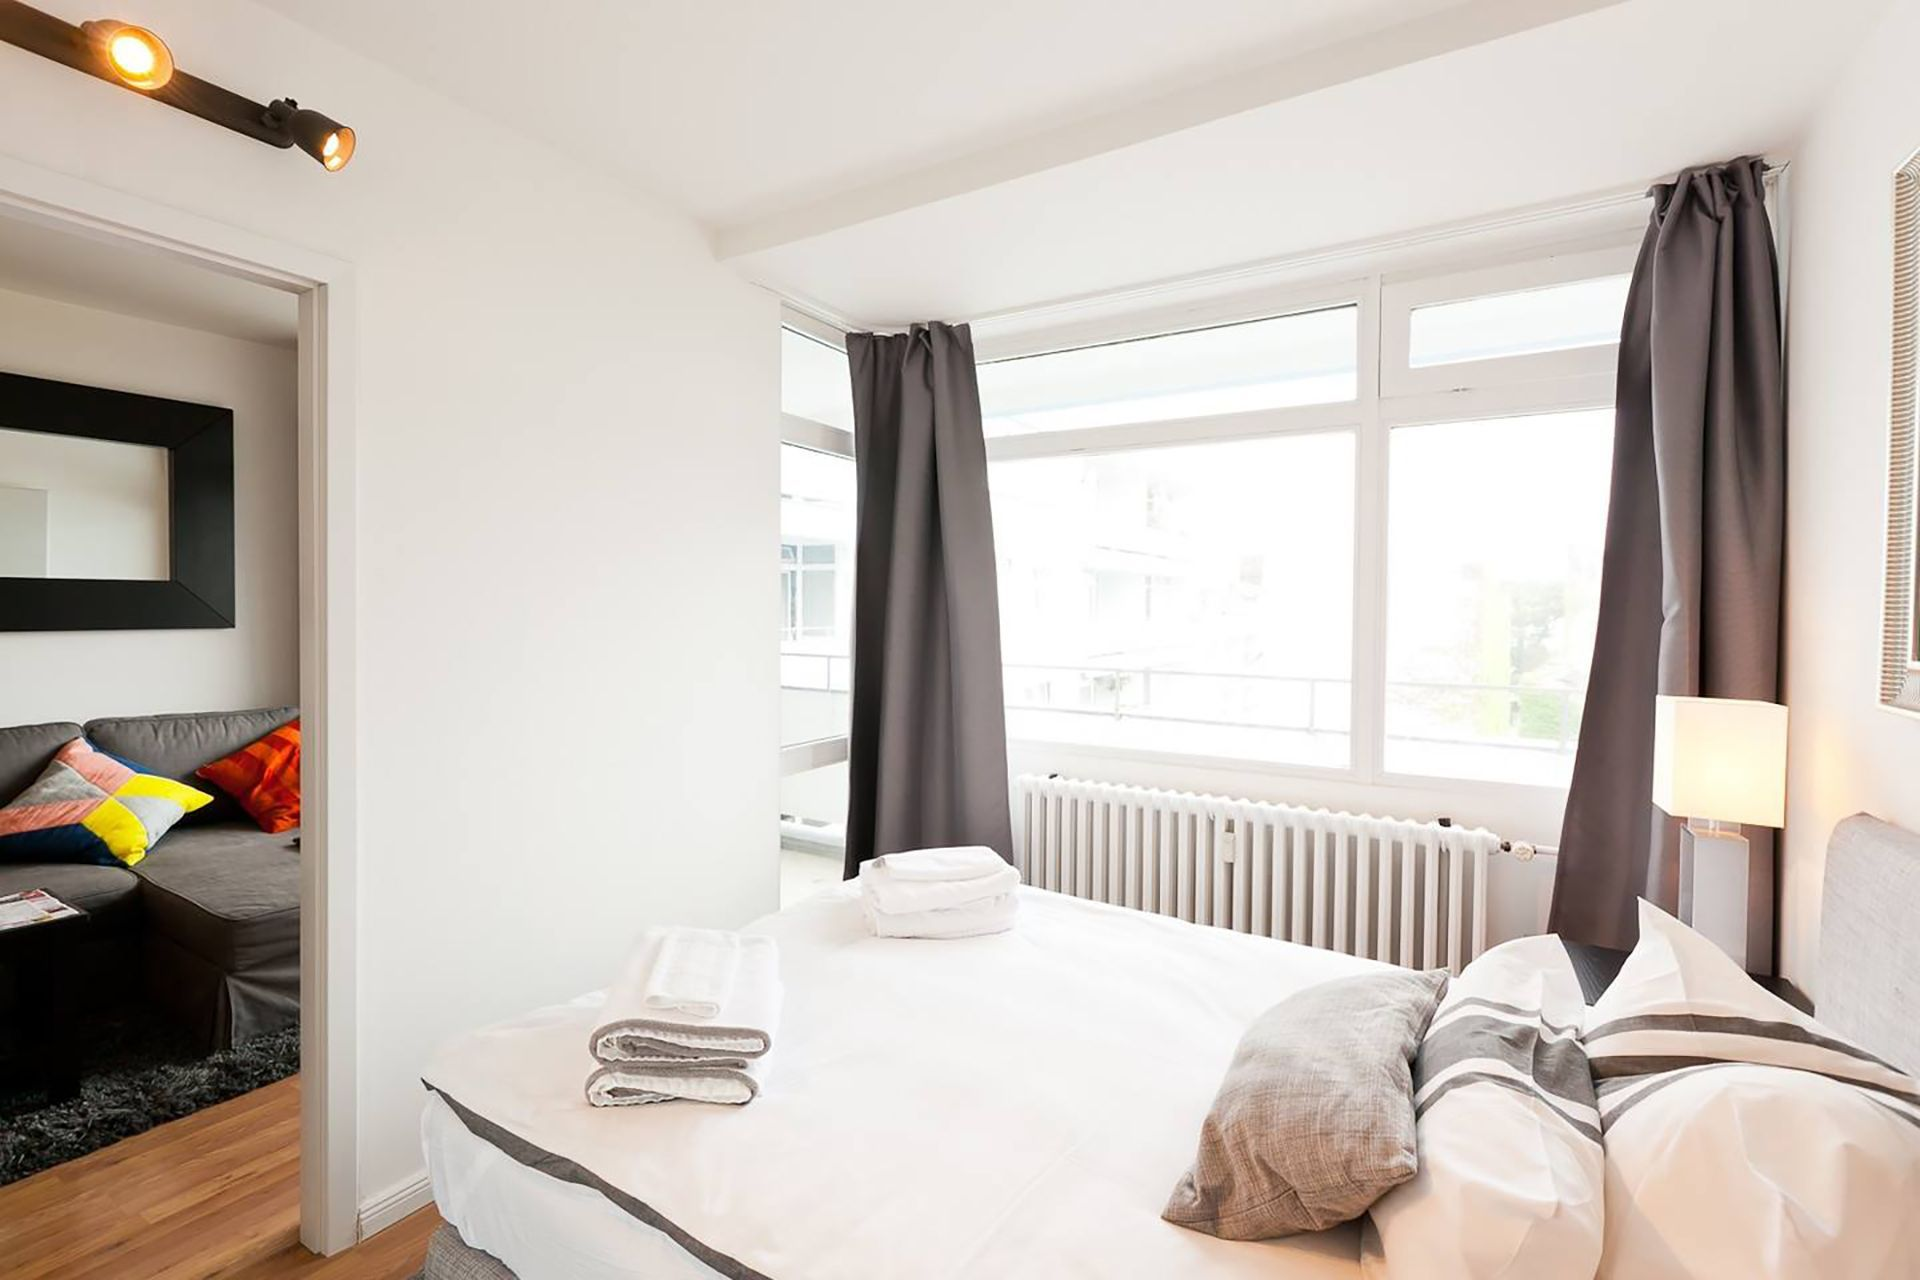 1 Bedroom - Small apartment to rent in Berlin BILE-B104-6054-0